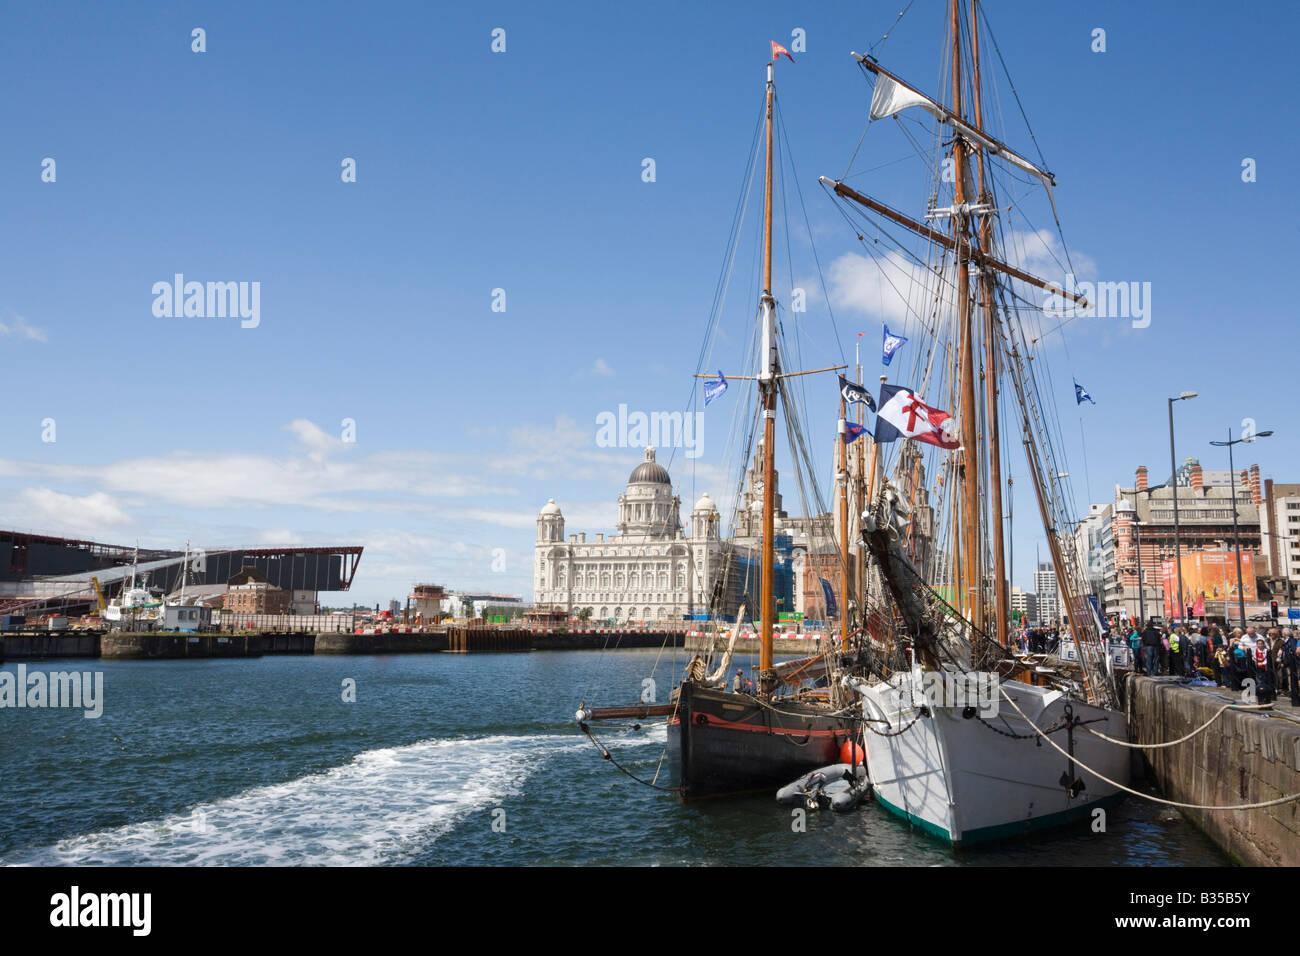 Liverpool Merseyside England UK July Tall Ships moored in Canning Dock on waterfront with Port of Liverpool building - Stock Image